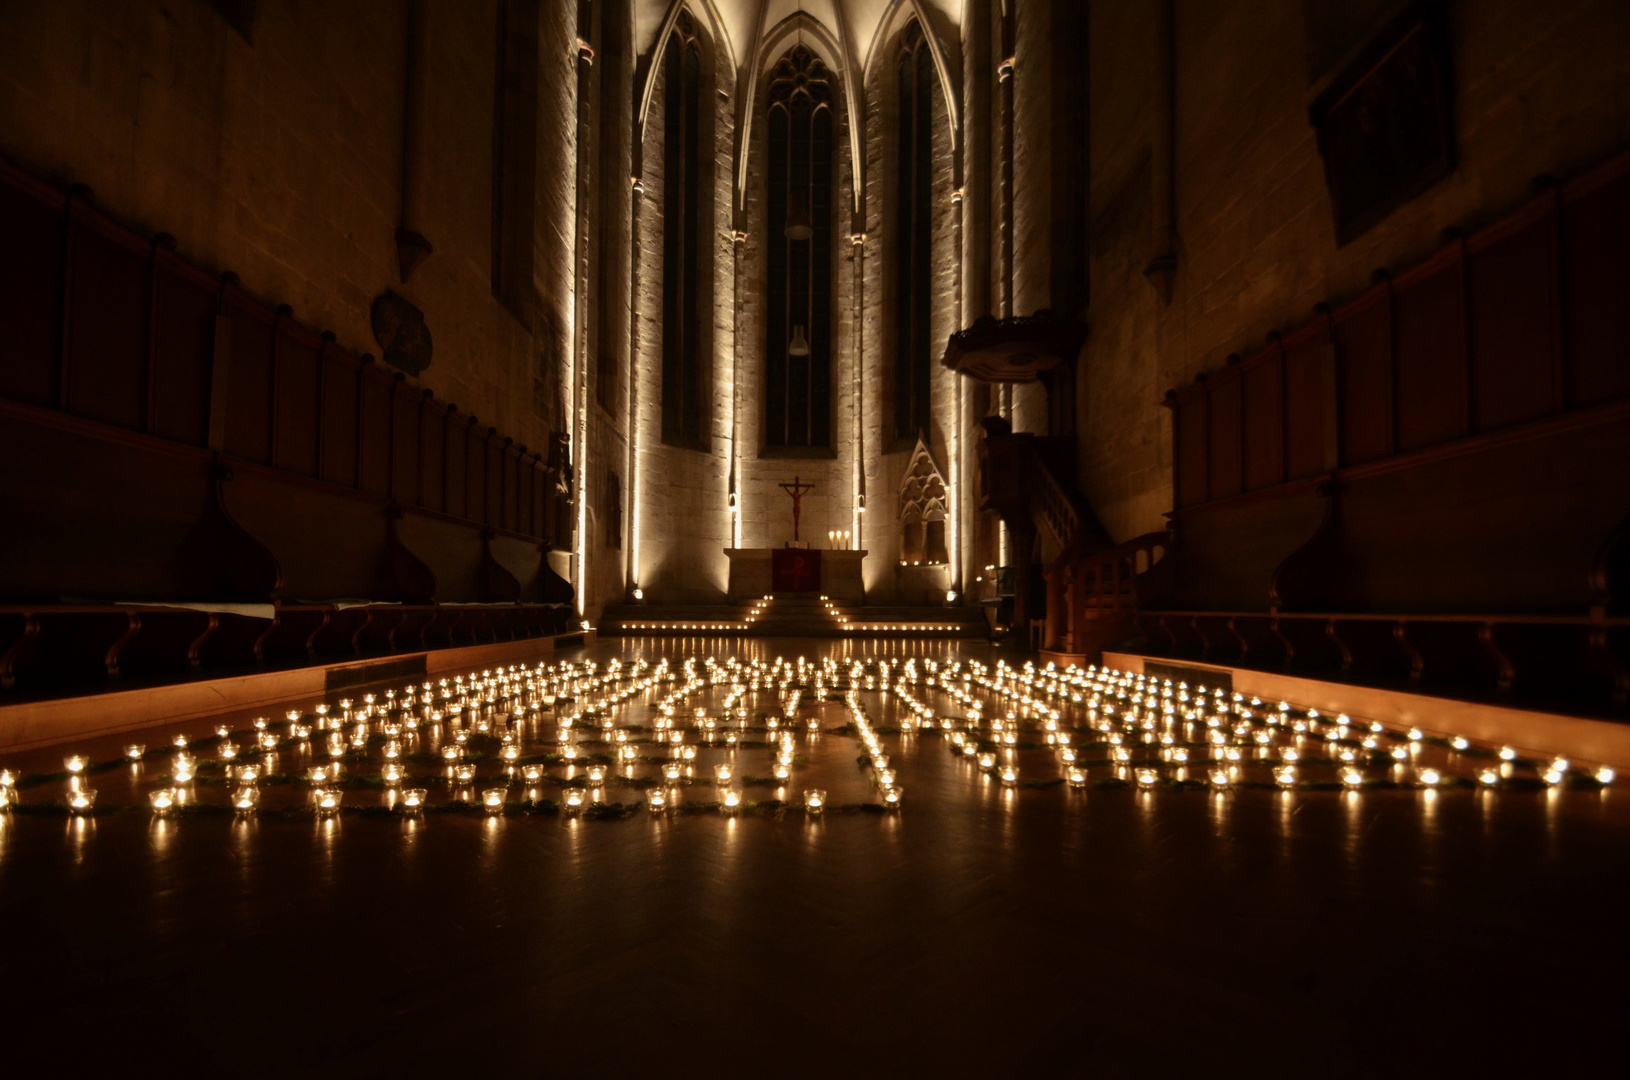 lichterlabyrinth foto bild weihnachten kirche nacht. Black Bedroom Furniture Sets. Home Design Ideas